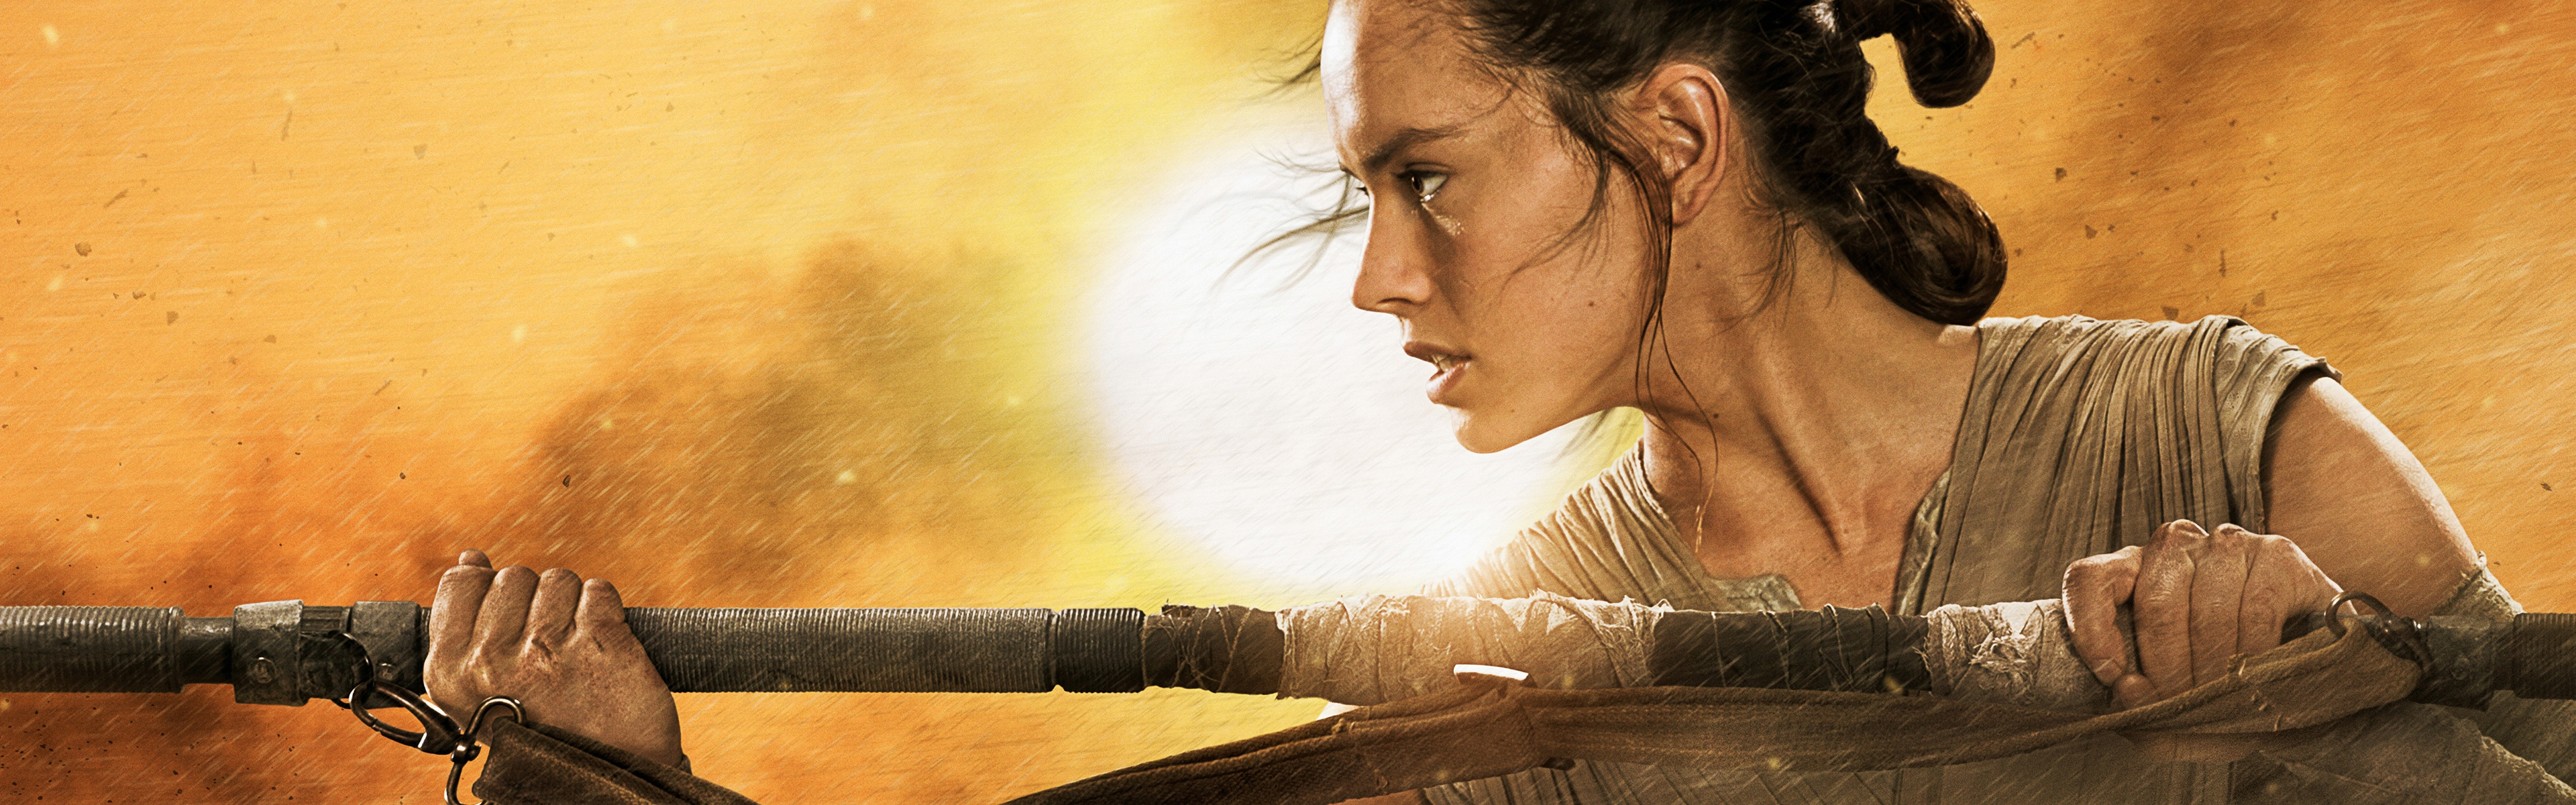 Star Wars The Force Awakens Rey Wallpapers HD Wallpapers 3840x1200